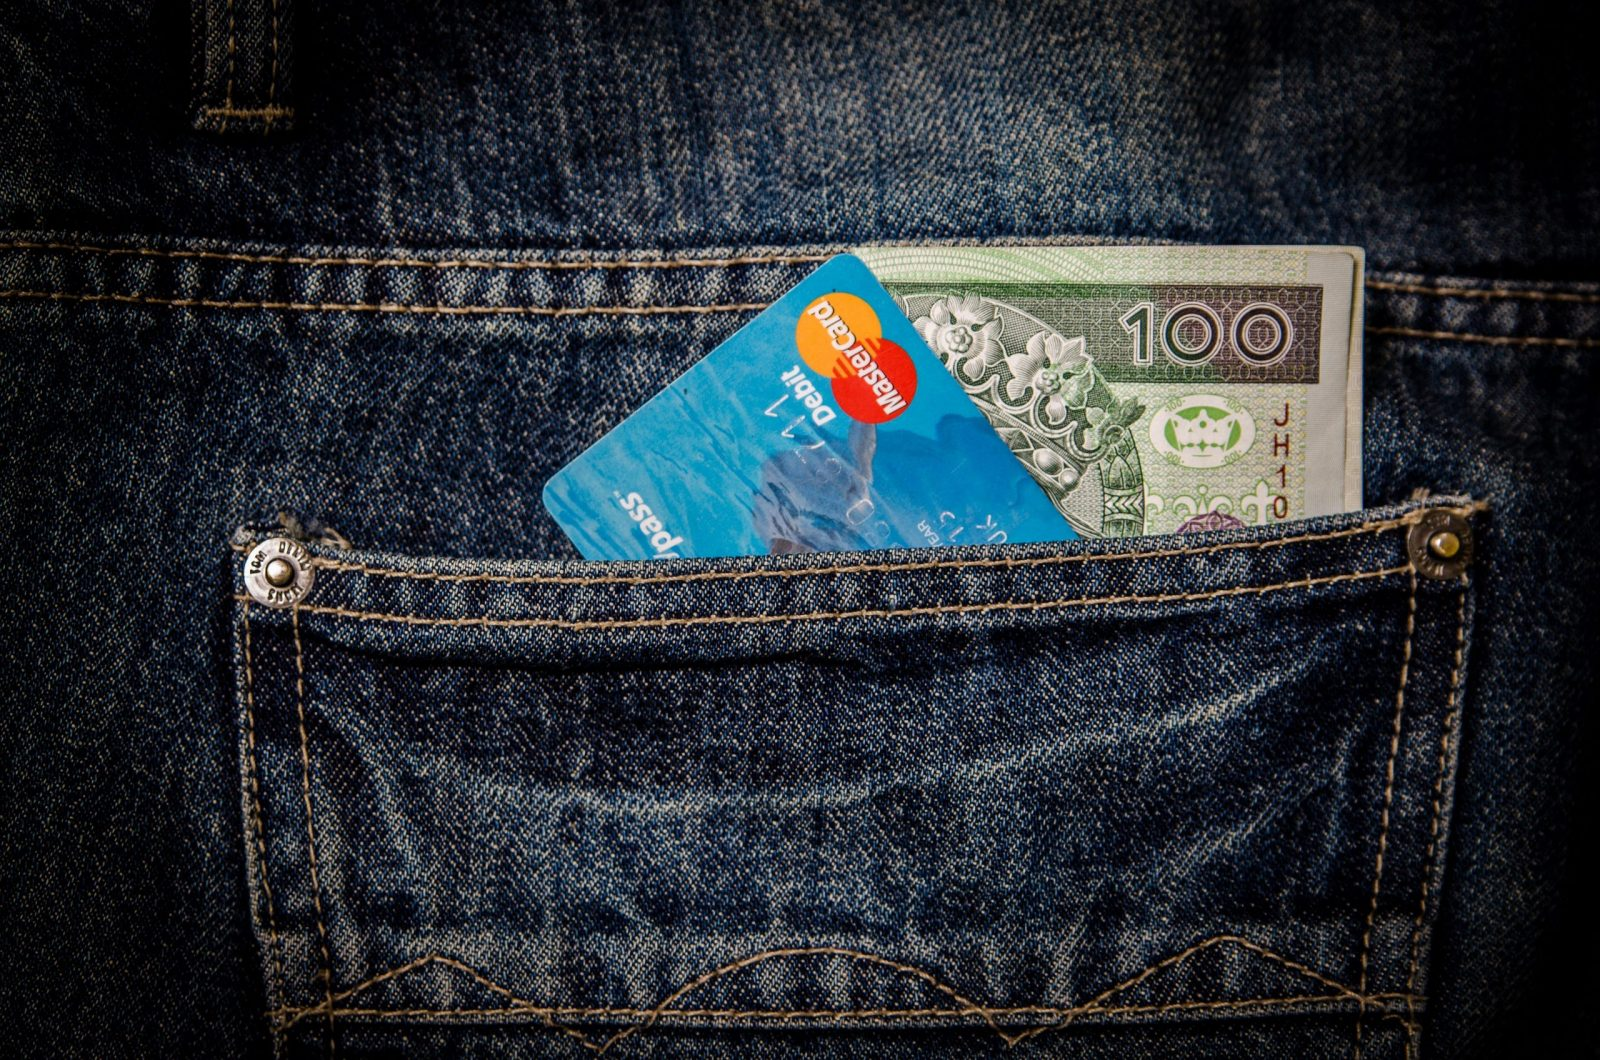 An image of a card and cash in the back pocket of a jeans of a customer paying a business